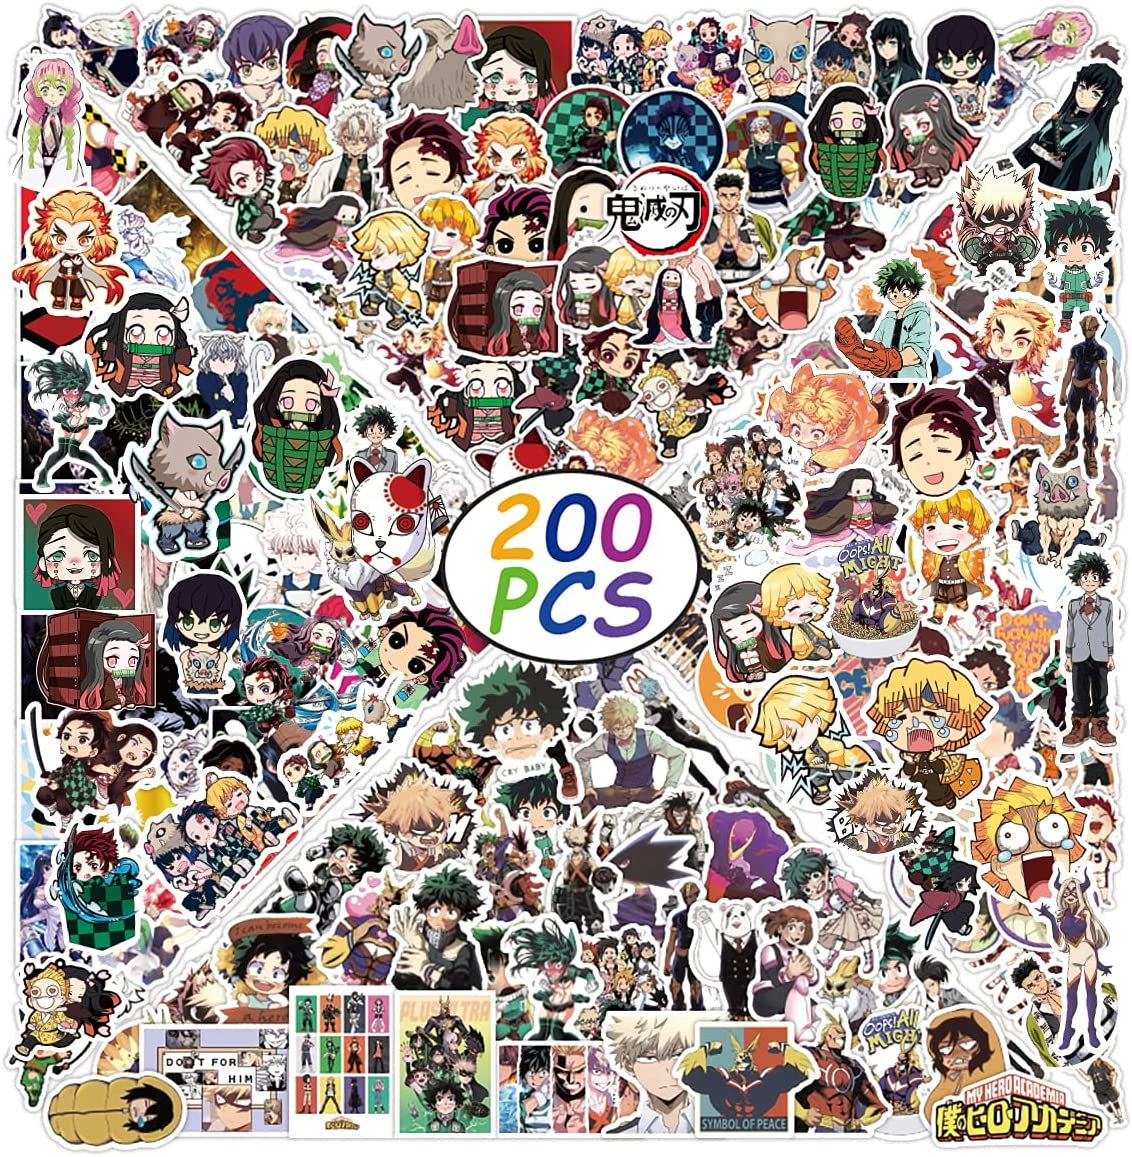 200Pcs Mixed Anime Stickers, Anime Cartoon Stickers for Laptop, Notebook Computer,Water Bottle,Luggage. Gifts for Kids, Men, Women,Teens, Adults